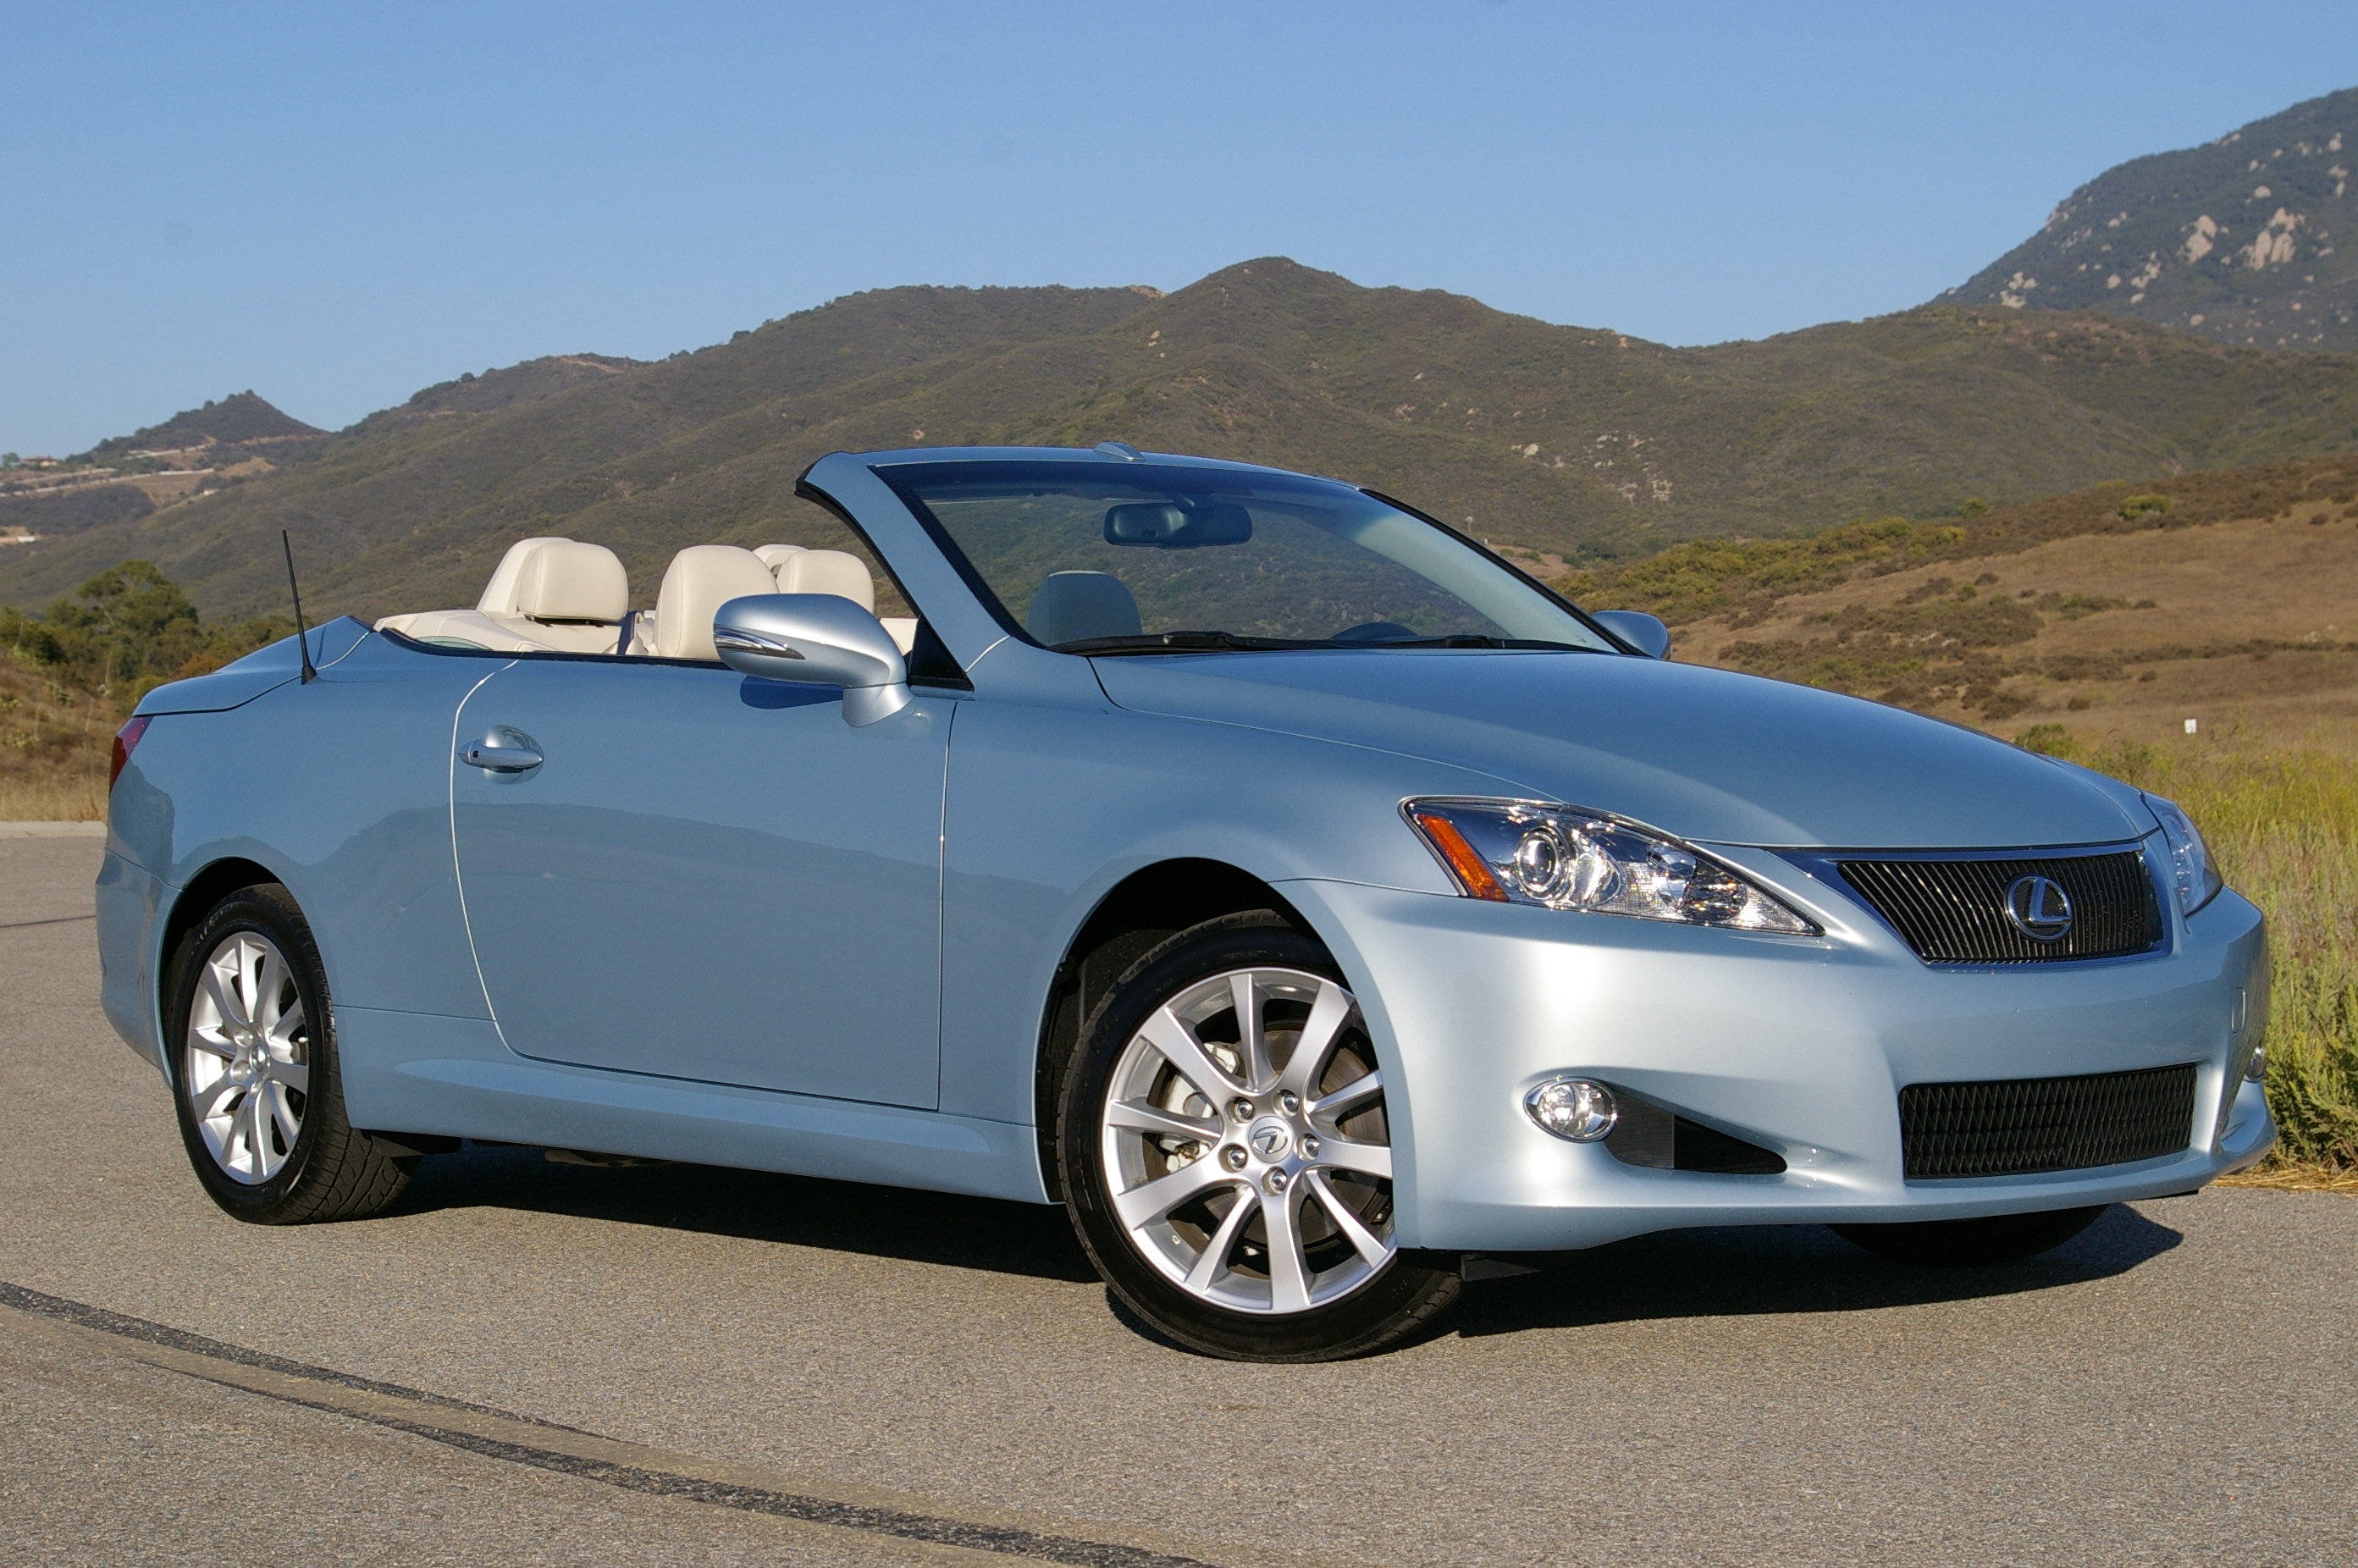 Lexus IS 250 C #13